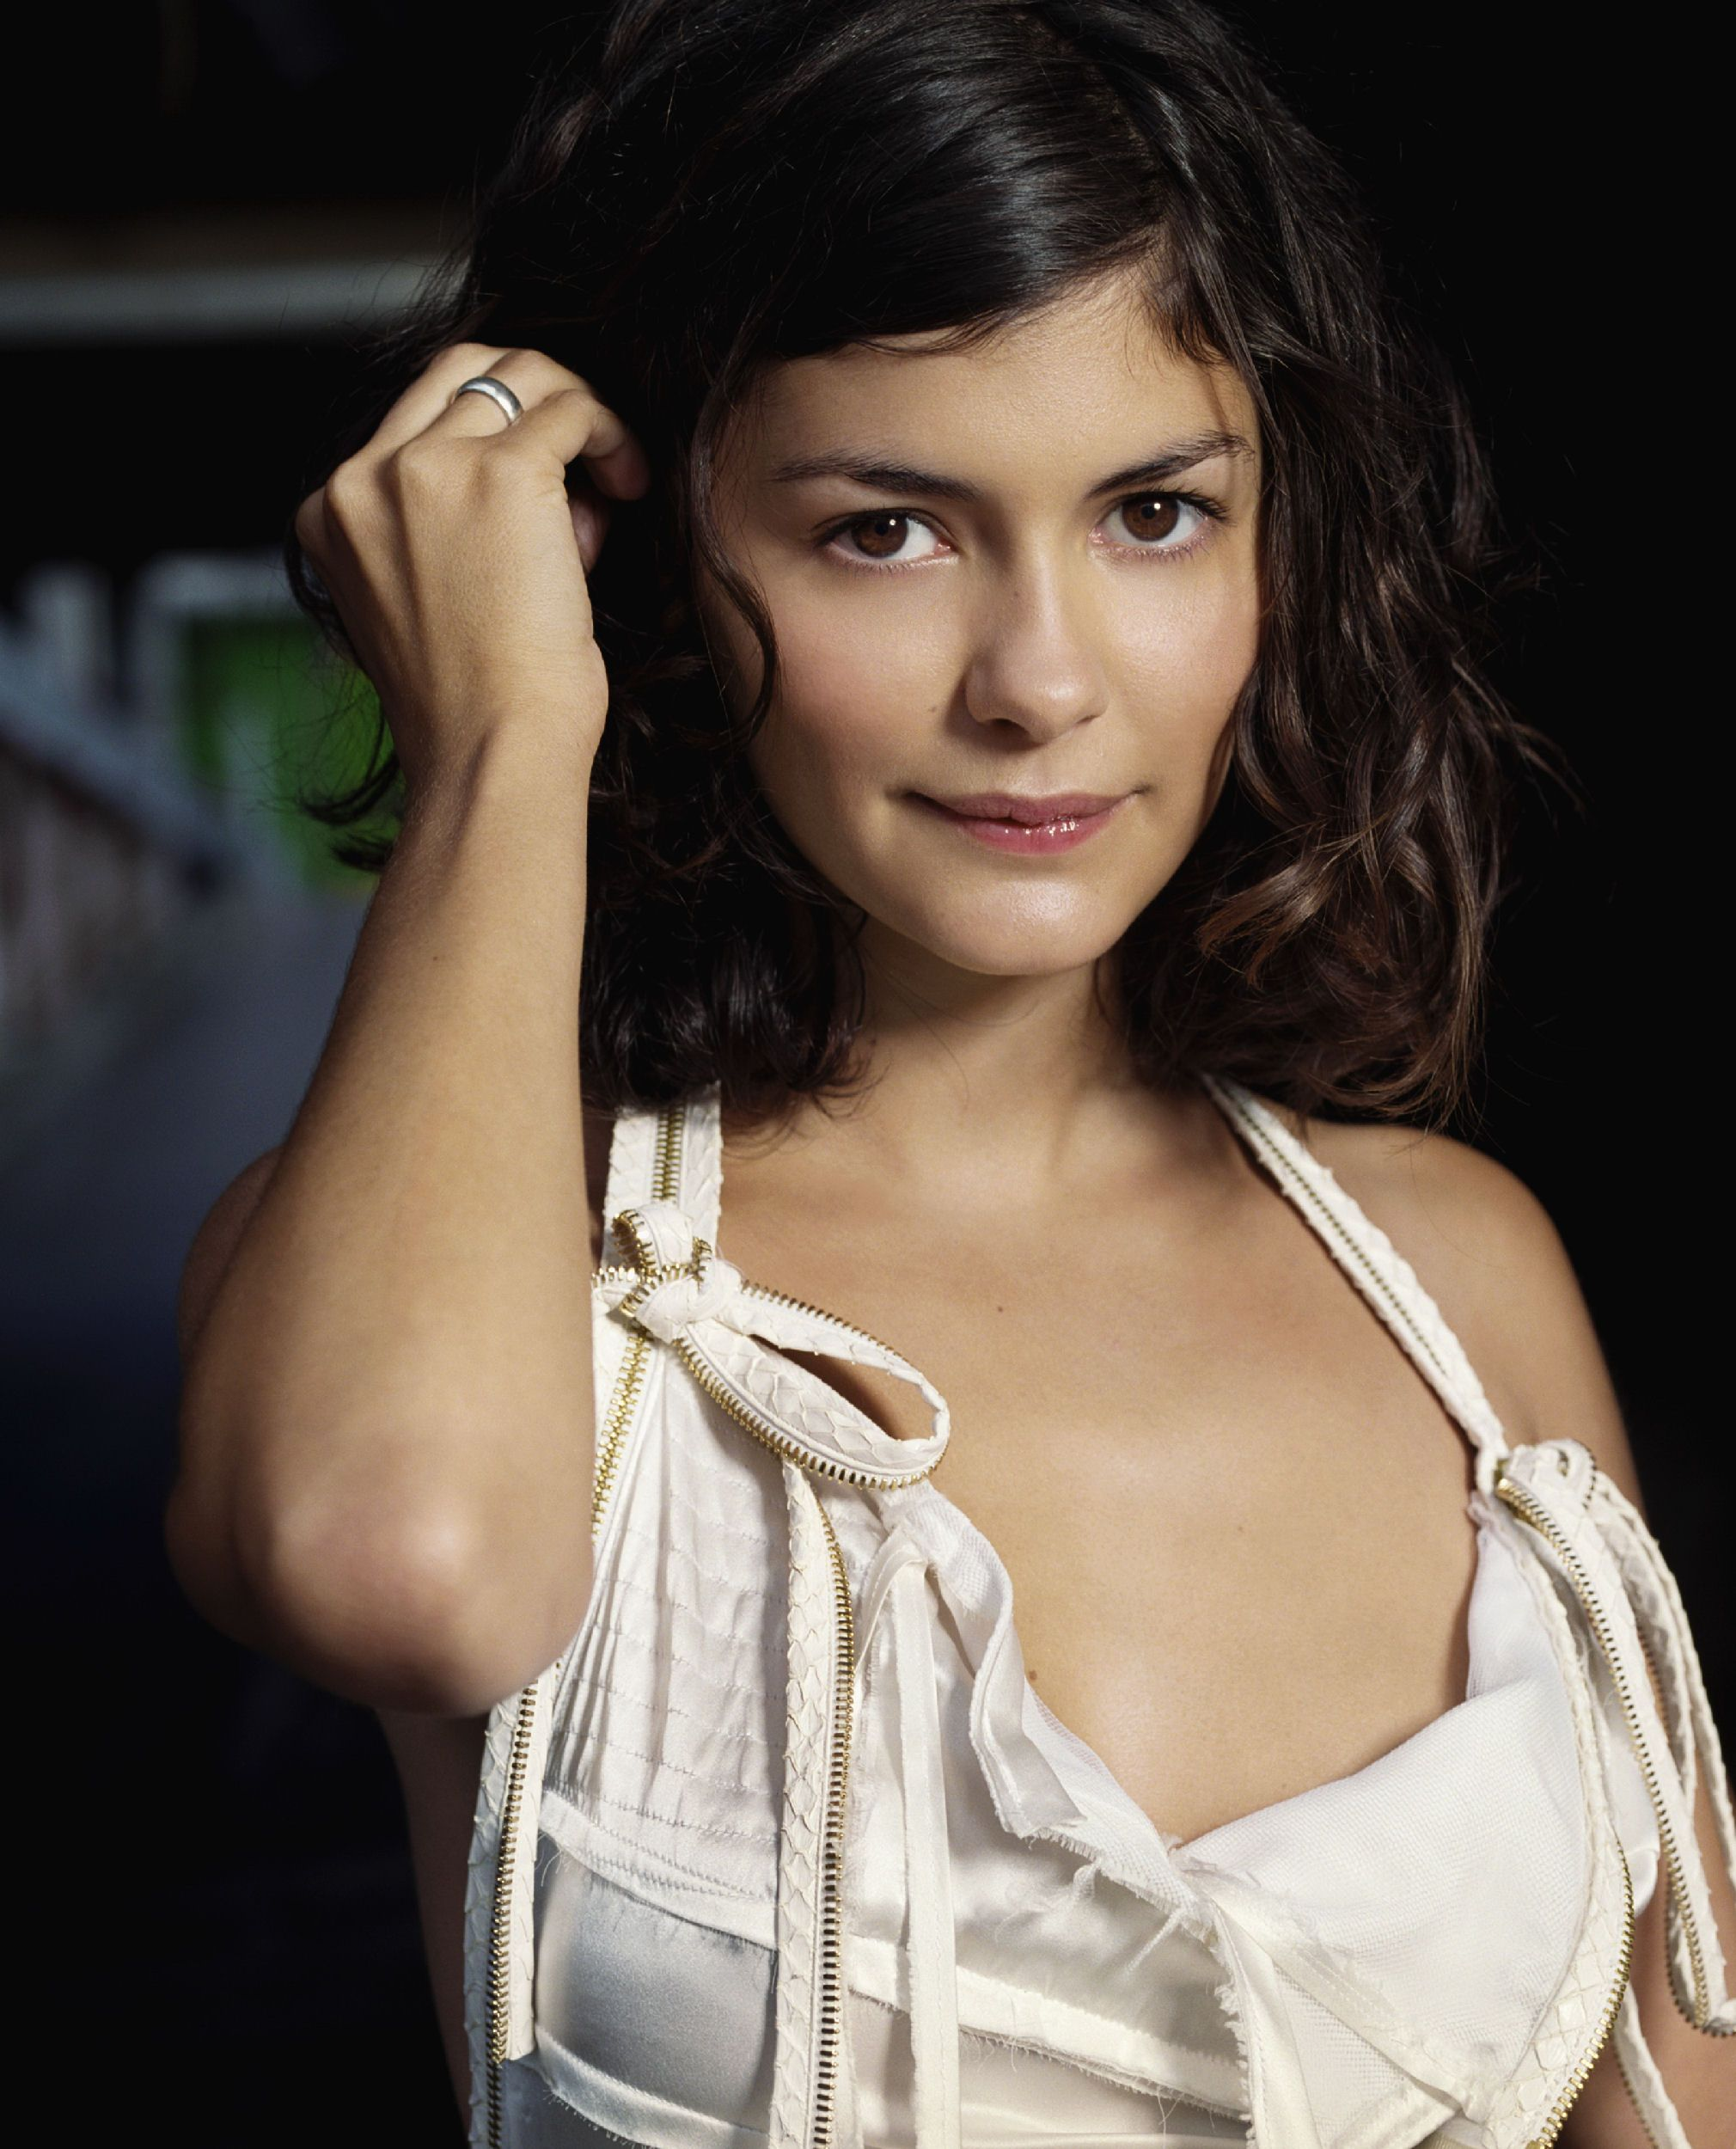 Hq Wallpaper For Audrey Tautou Now Viewing Of 94 Pictures Found In The Image Gallery